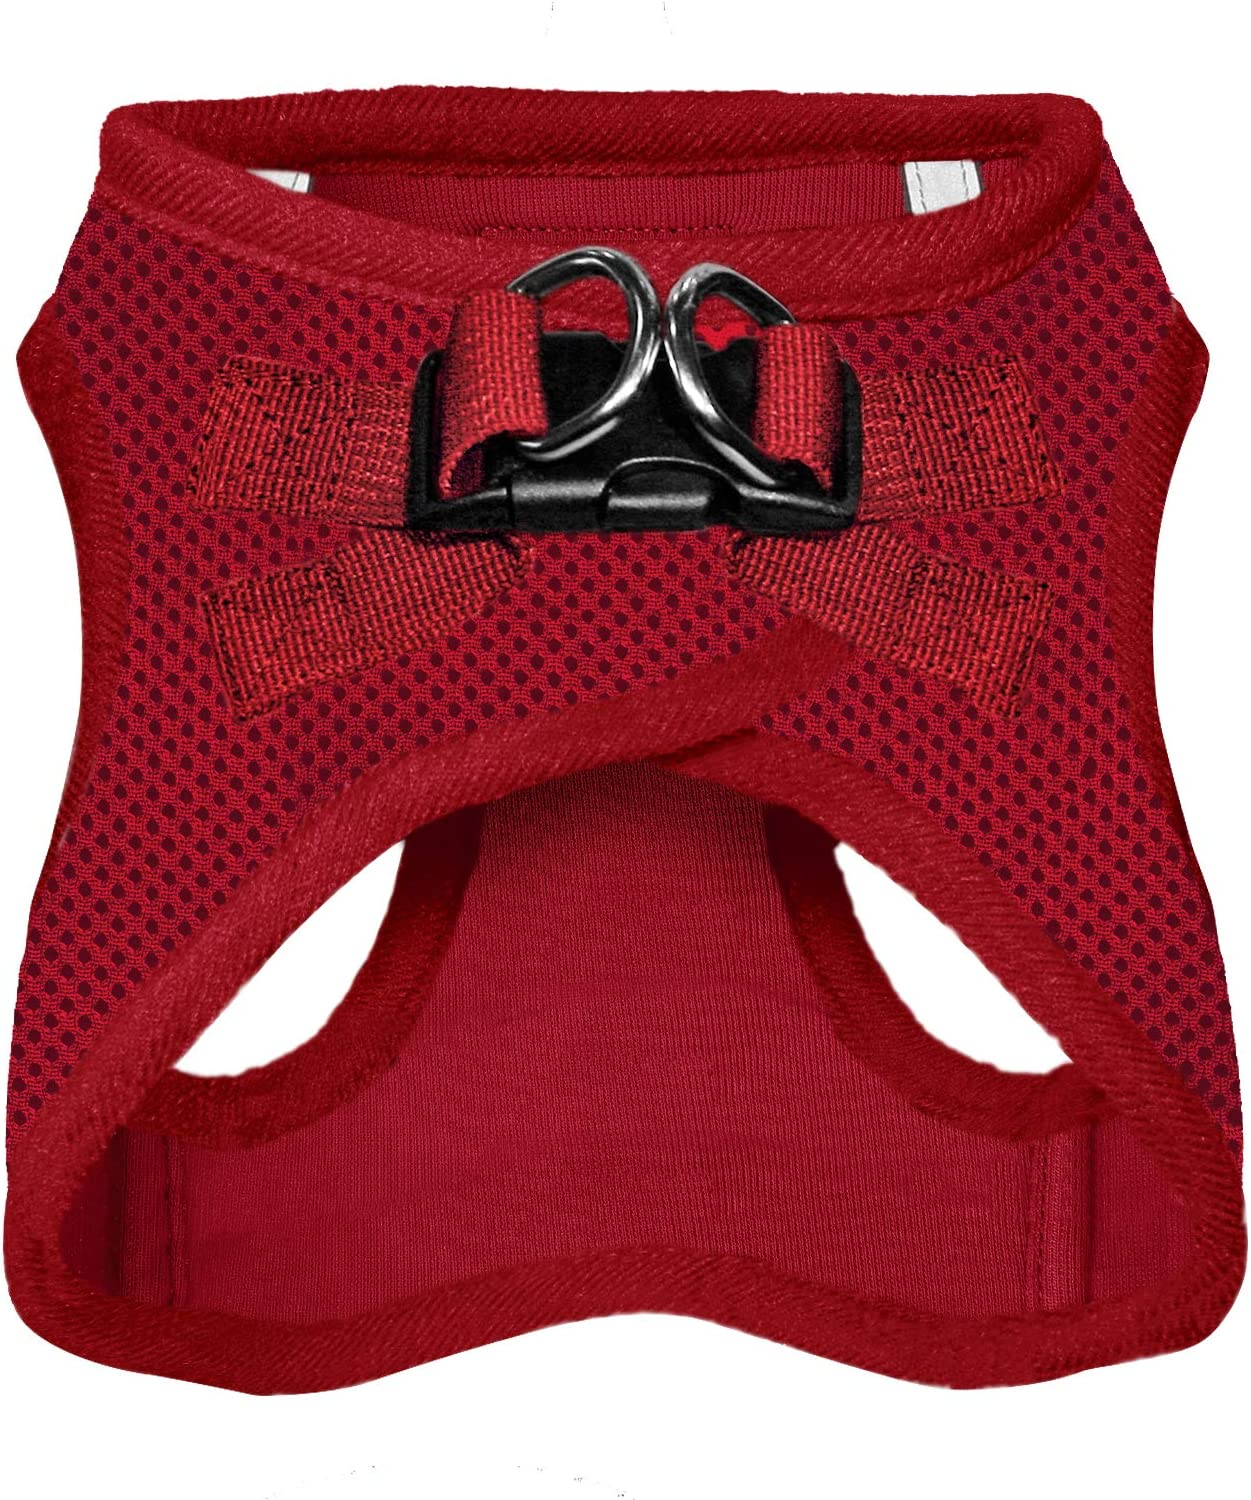 207-RDW-XS All Weather Mesh Matching Trim Best Pet Supplies Voyager Step-in Air Dog Harness Red Step in Vest Harness for Small and Medium Dogs XS Chest: 13-14.5